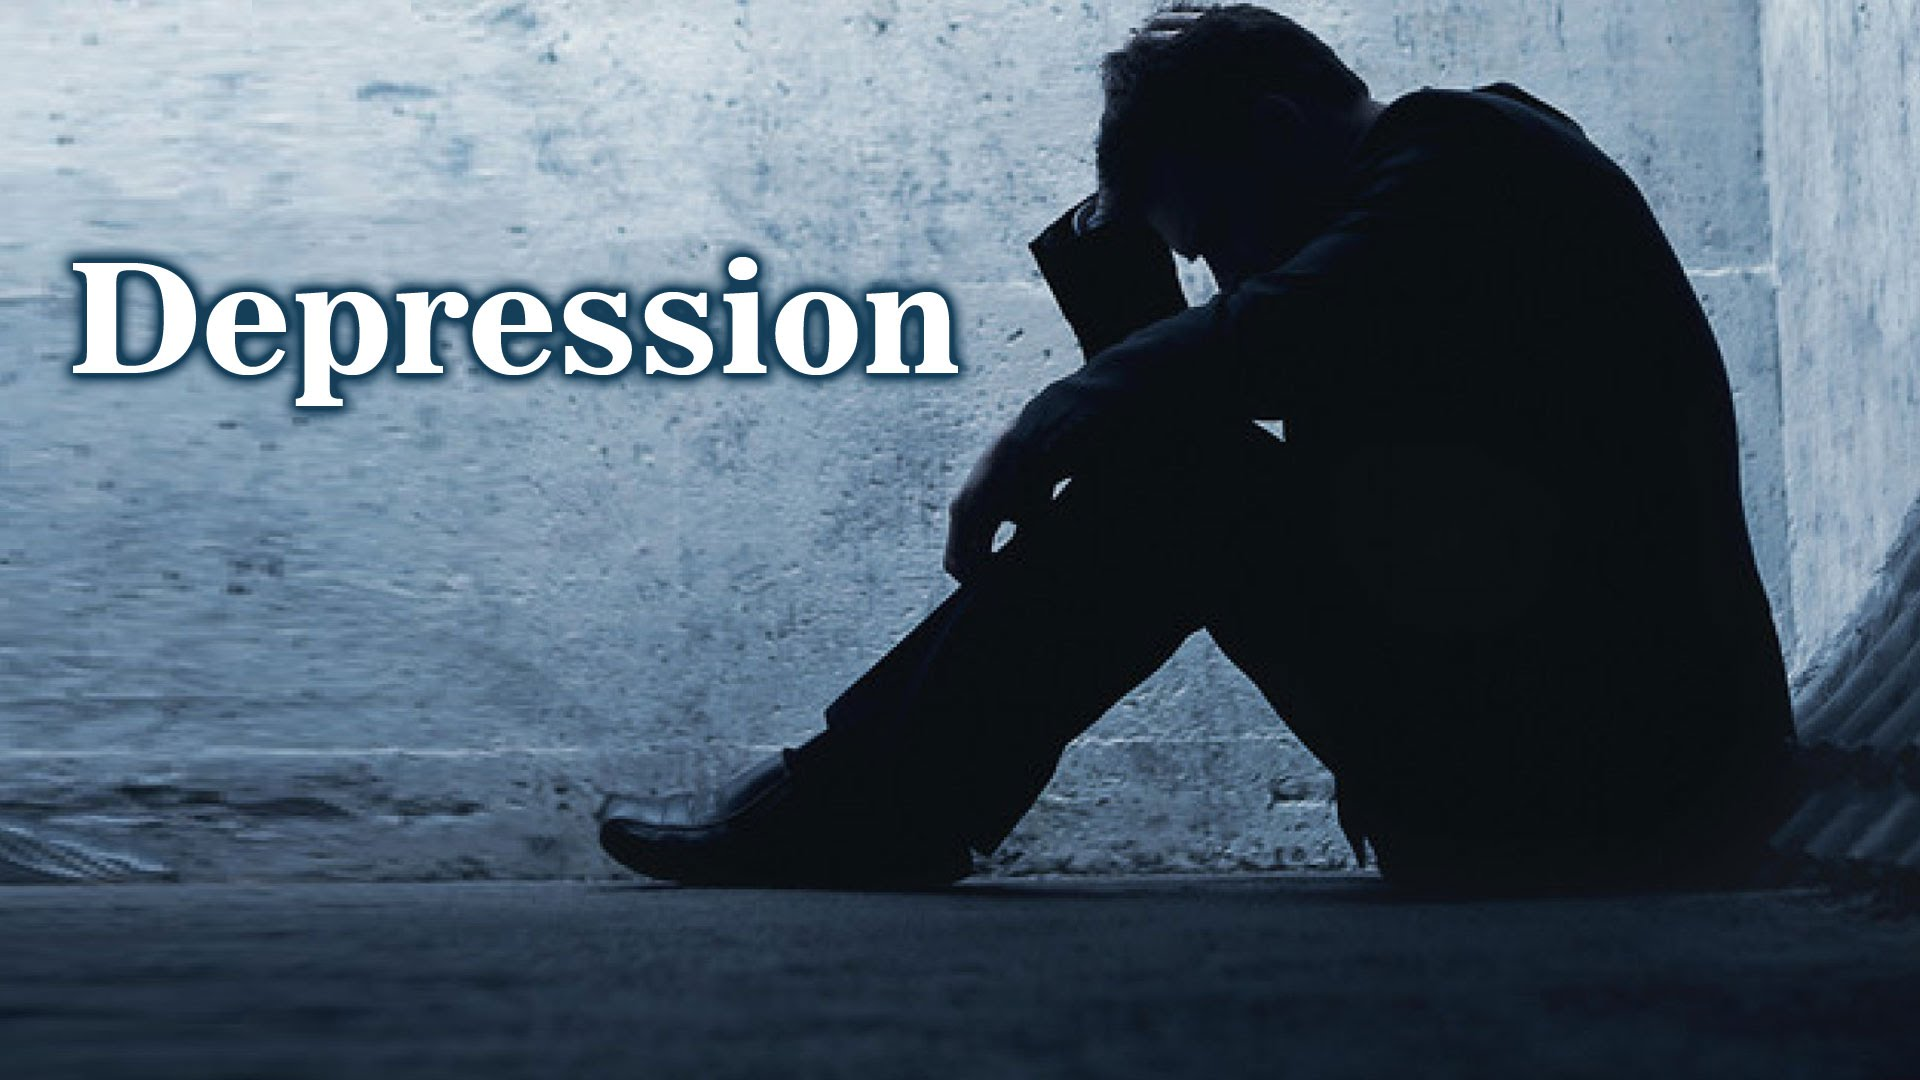 depression coinsellor in west london.jpg